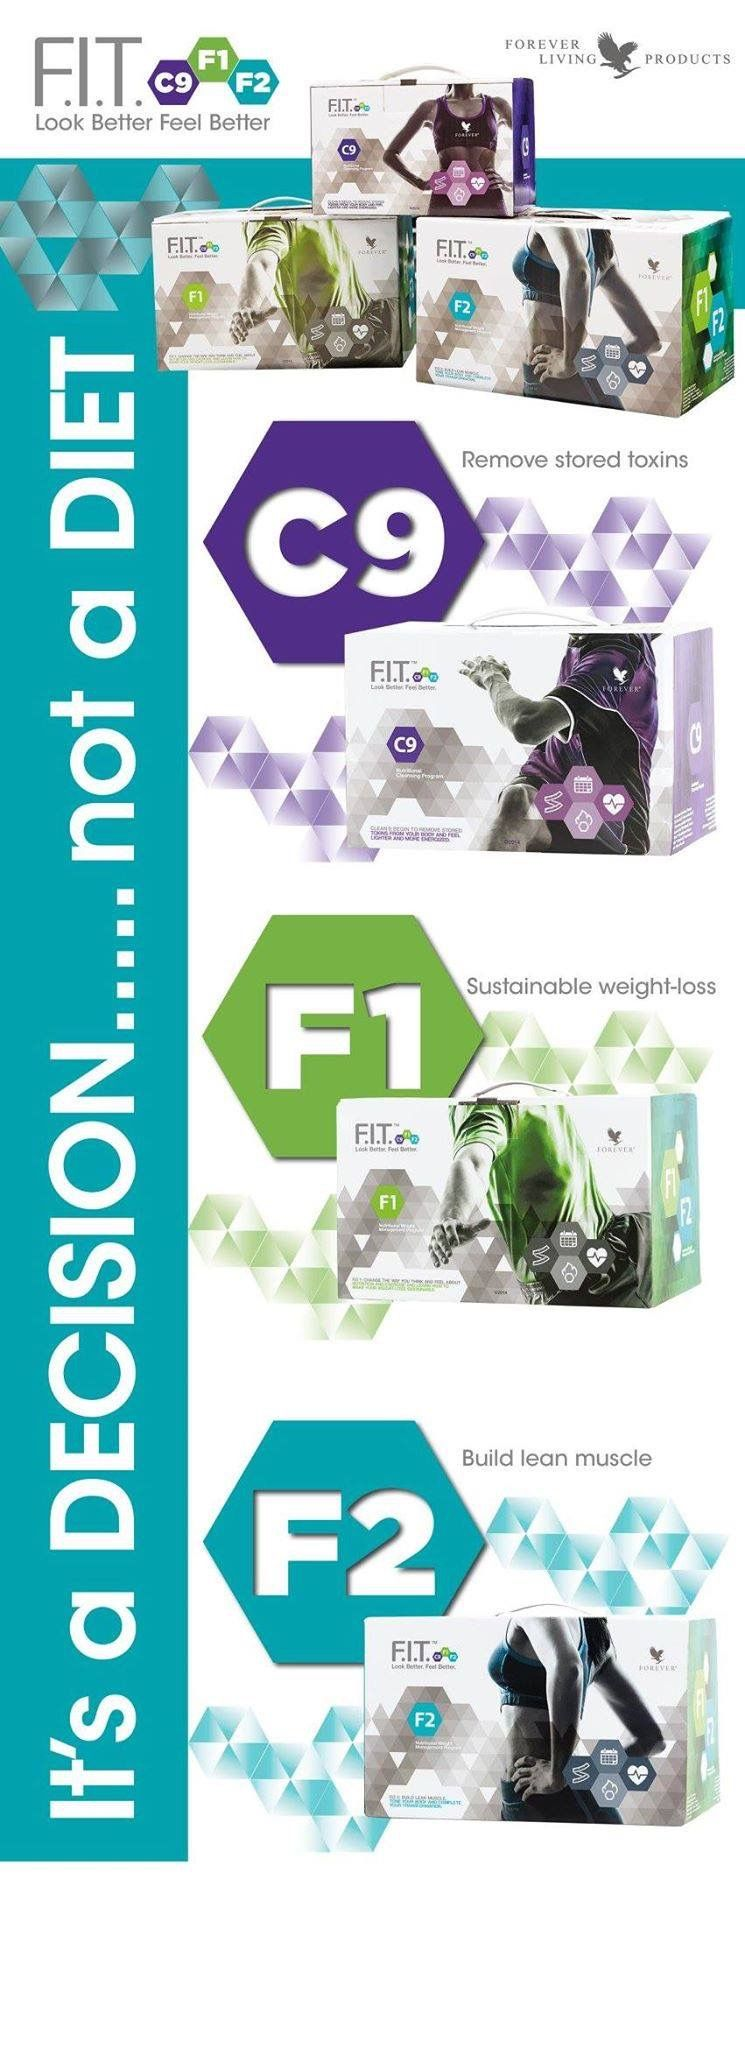 Clean9 - remove stored toxins, look and feel better. A kick-start to a healthier you.   FIT 1 - Change the way you think about food and exercise.   FIT 2 - build lean muscle for sustainable weight loss. Products available at http://www.healeraloe.flp.com/